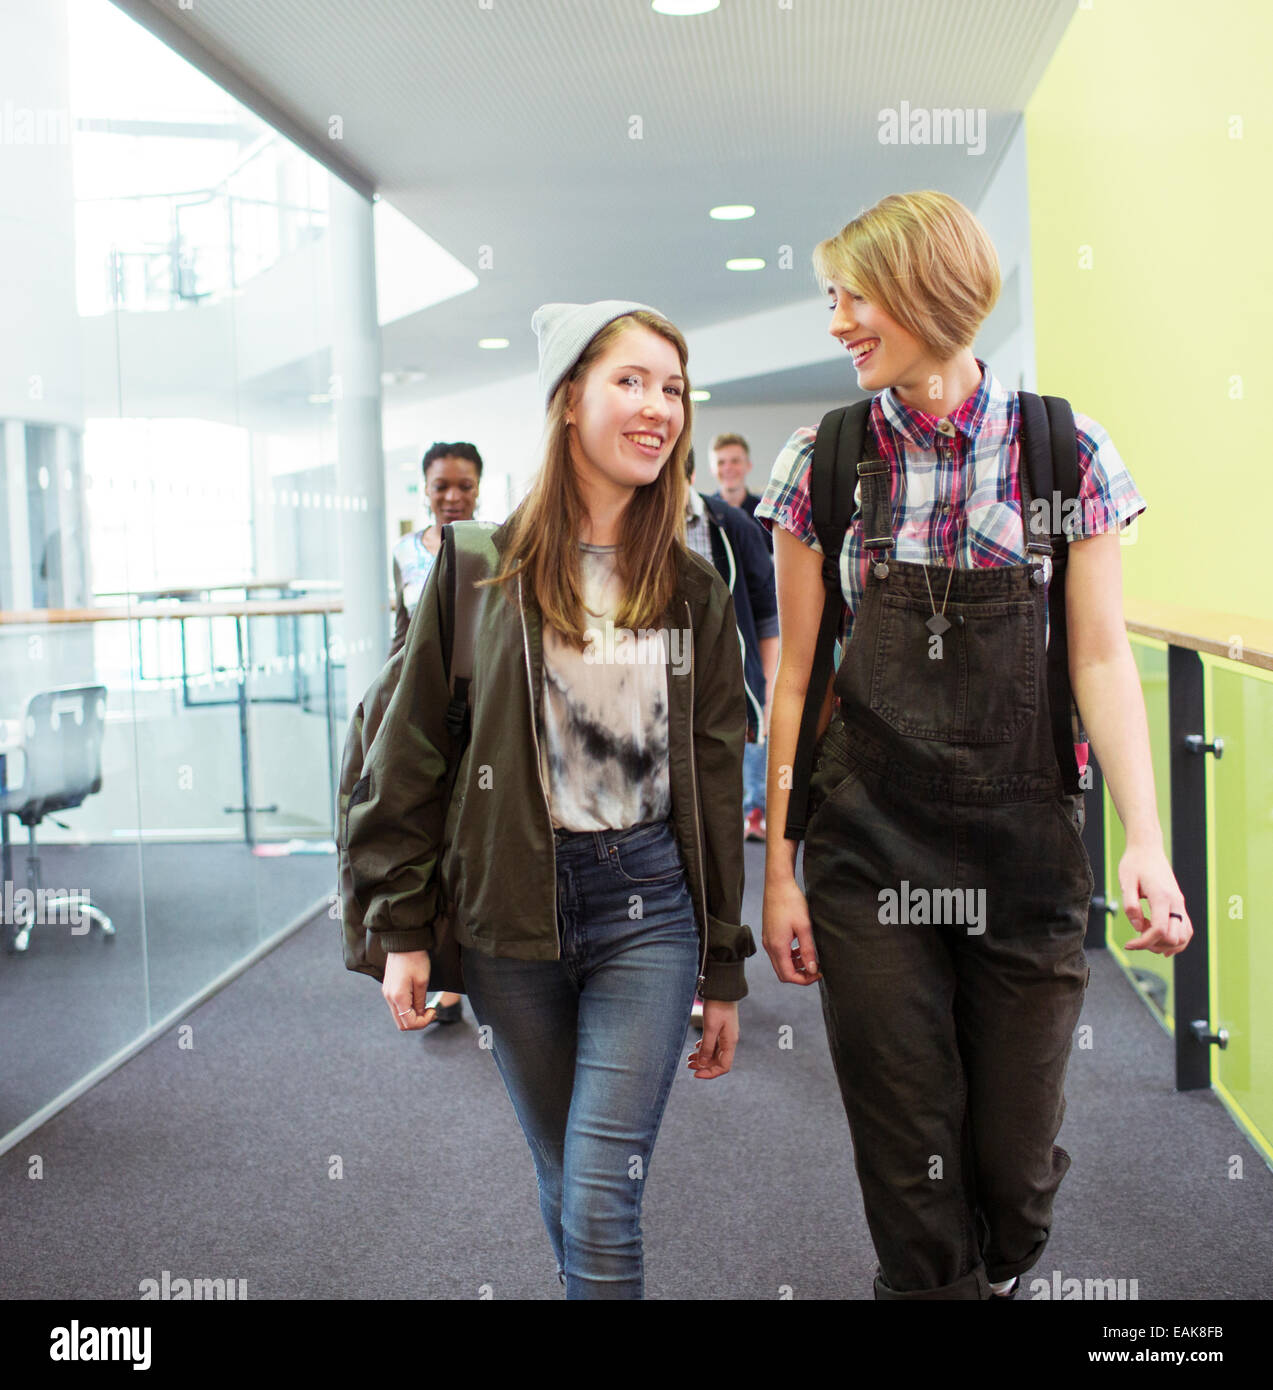 Group of cheerful students walking in corridor - Stock Image